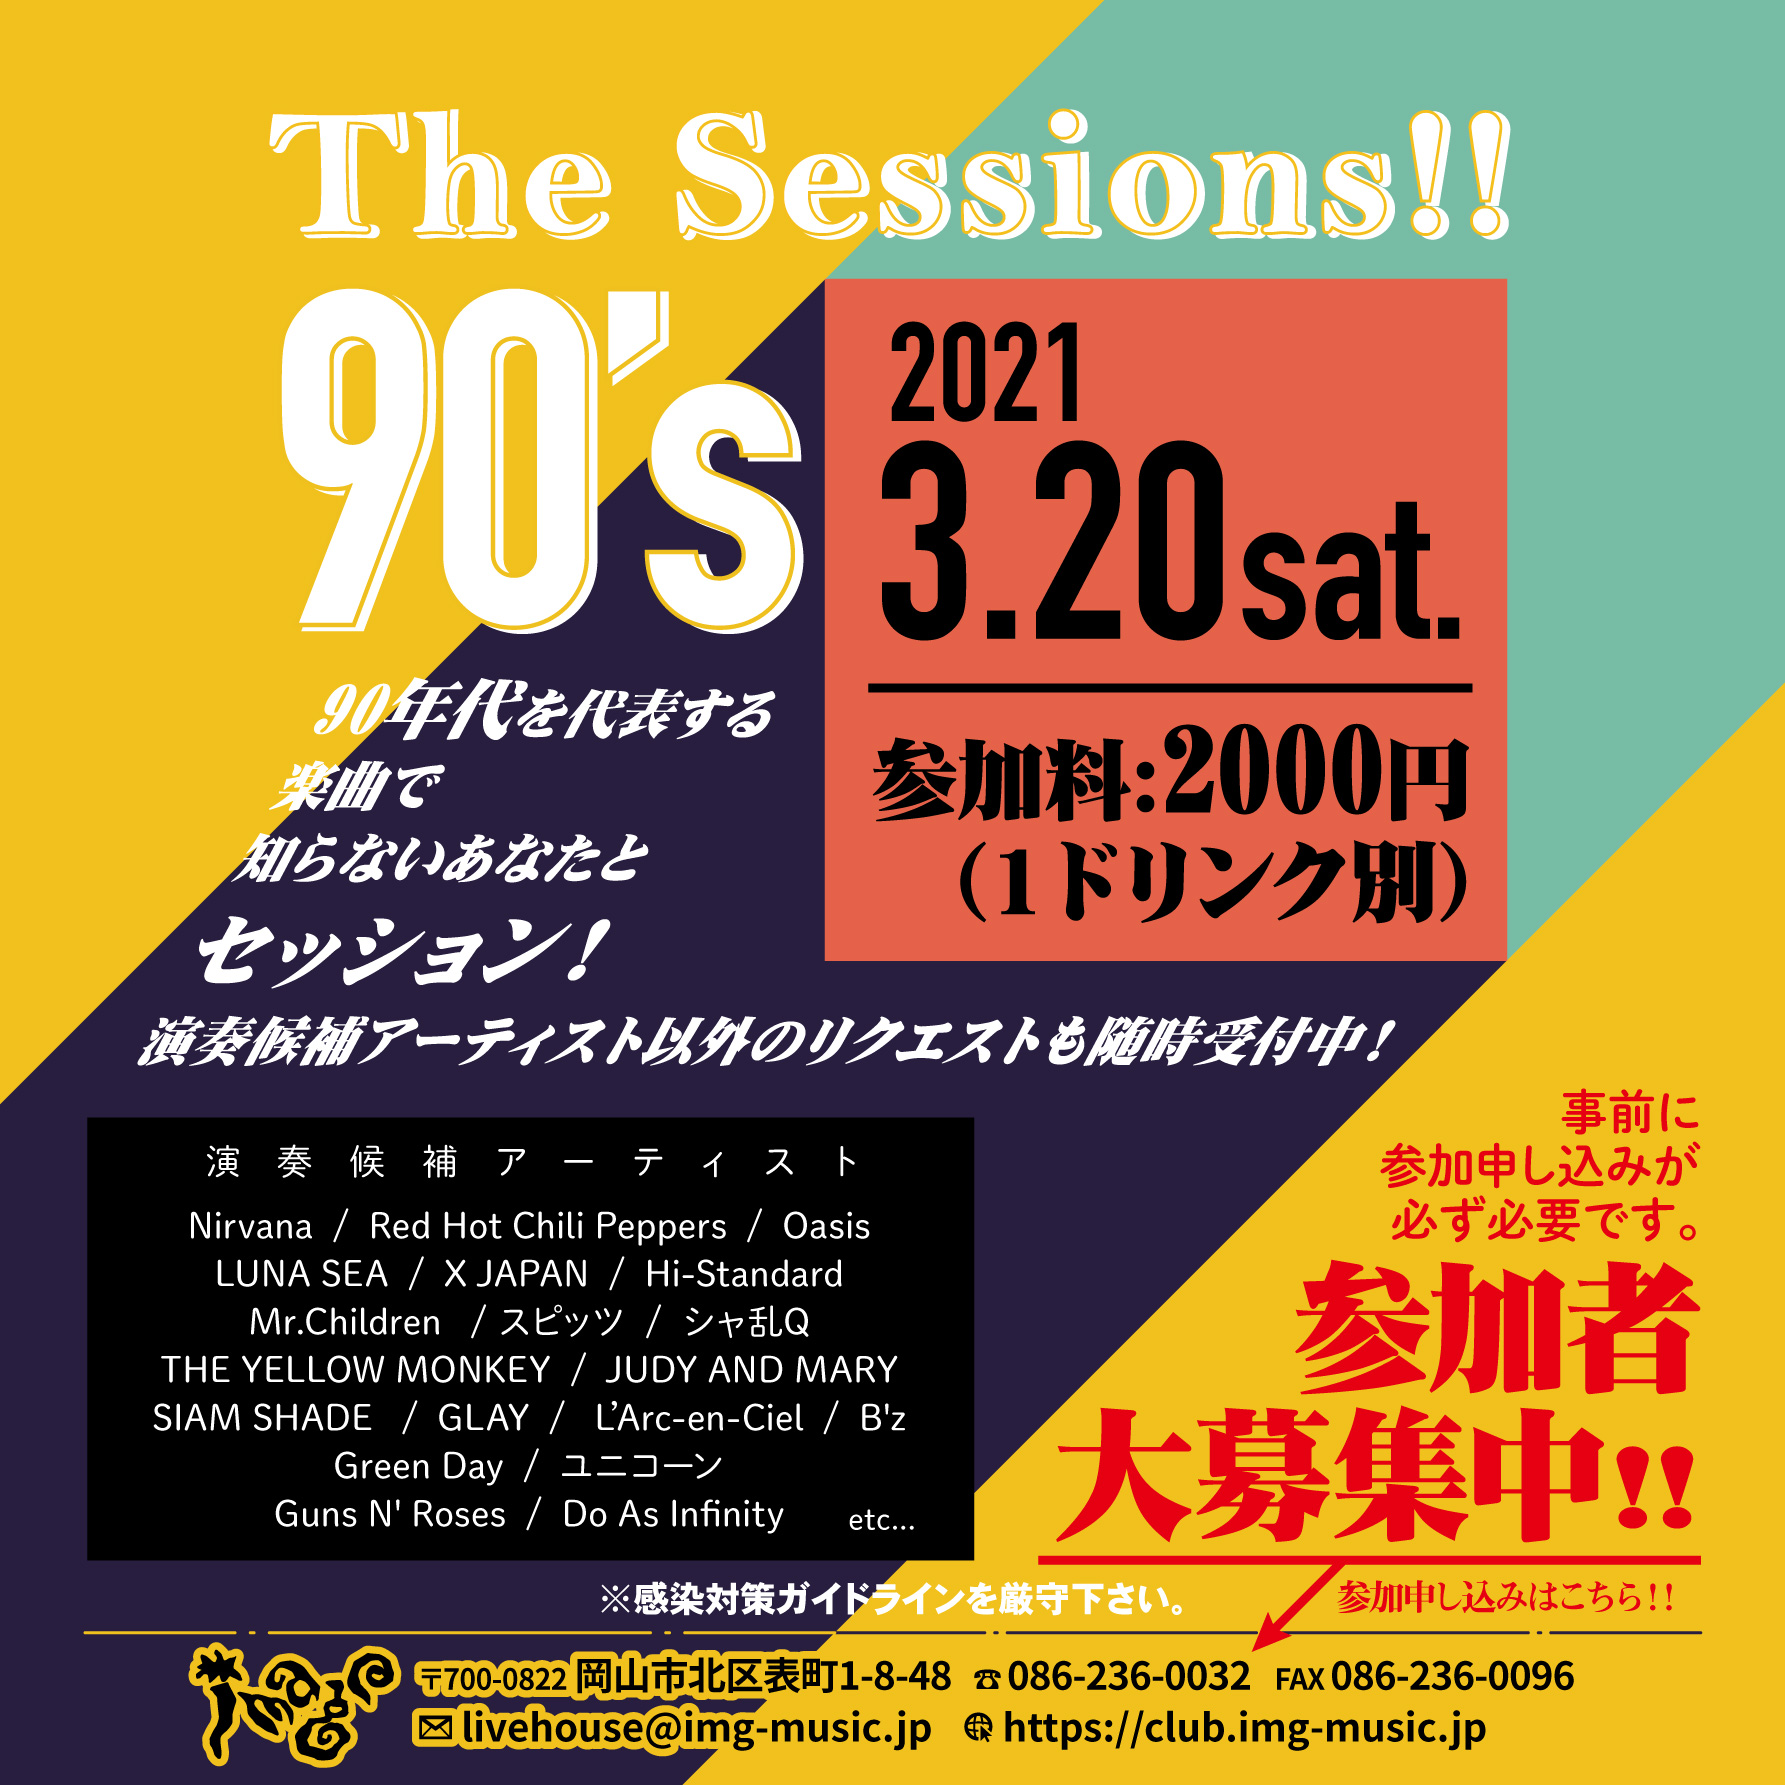 The Sessions!! 90's